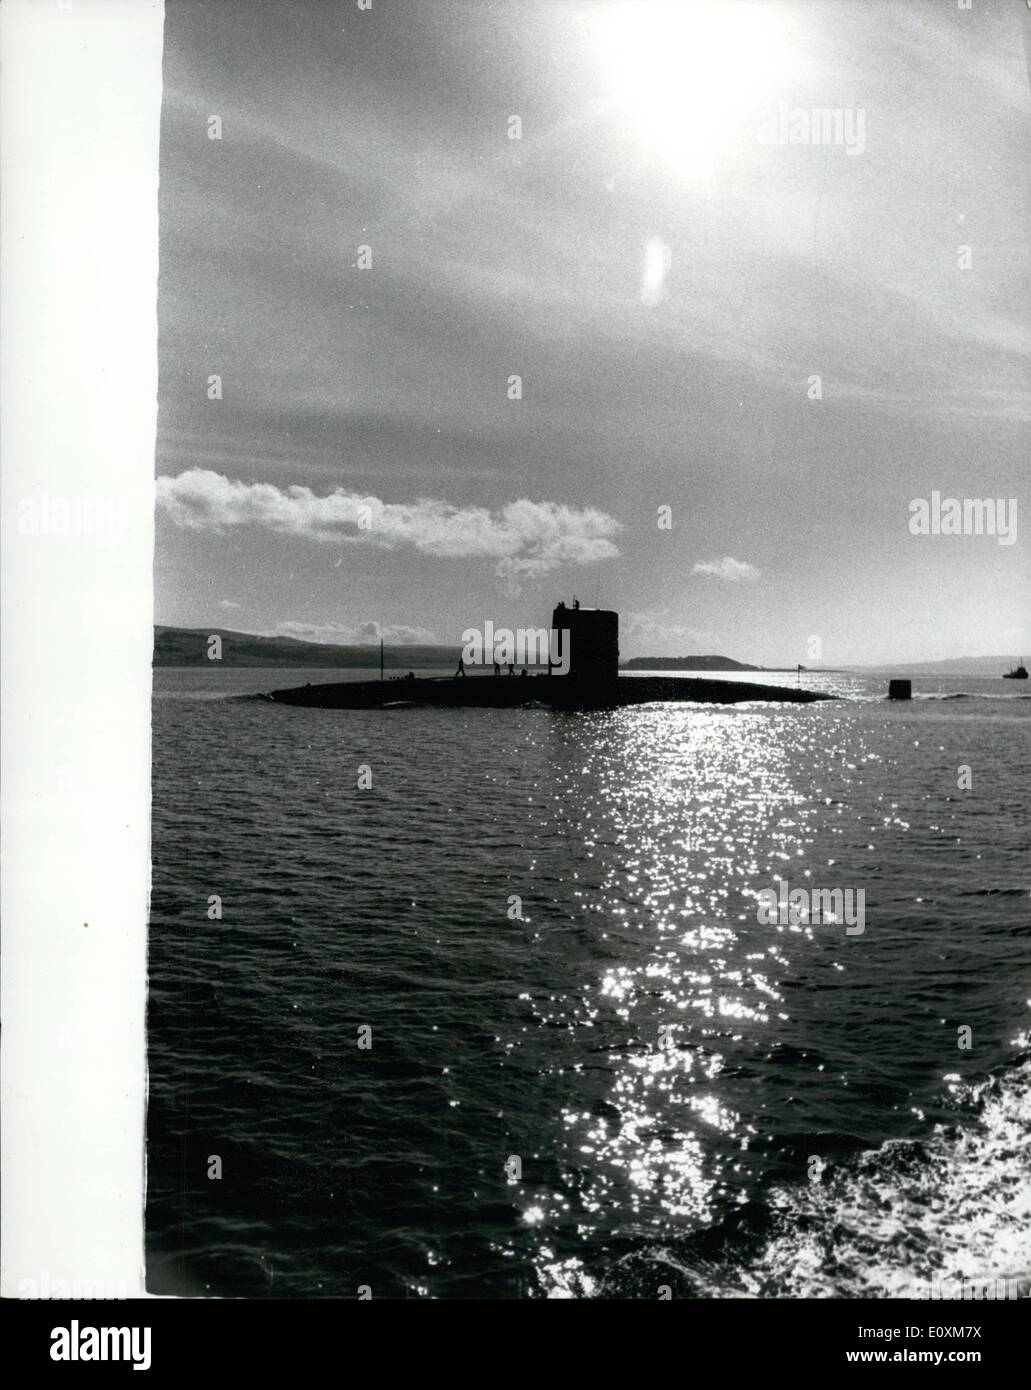 Apr. 04, 1967 - Underwater from Singapore. The nuclear-powered submarine Valiant, 3,500-tons, arrived yesterday at Faslane, Gare Loch, Dunbartonshire, yesterday, at the lend of a 12,000-miles underwater voyage from Singapore - a British record. Photo Shows The nuclear- powered submarine H.M.S. Valiant, pictured yesterday on her arrival at Faslane, Gare Loch, Dunbartenshire. - Stock Image